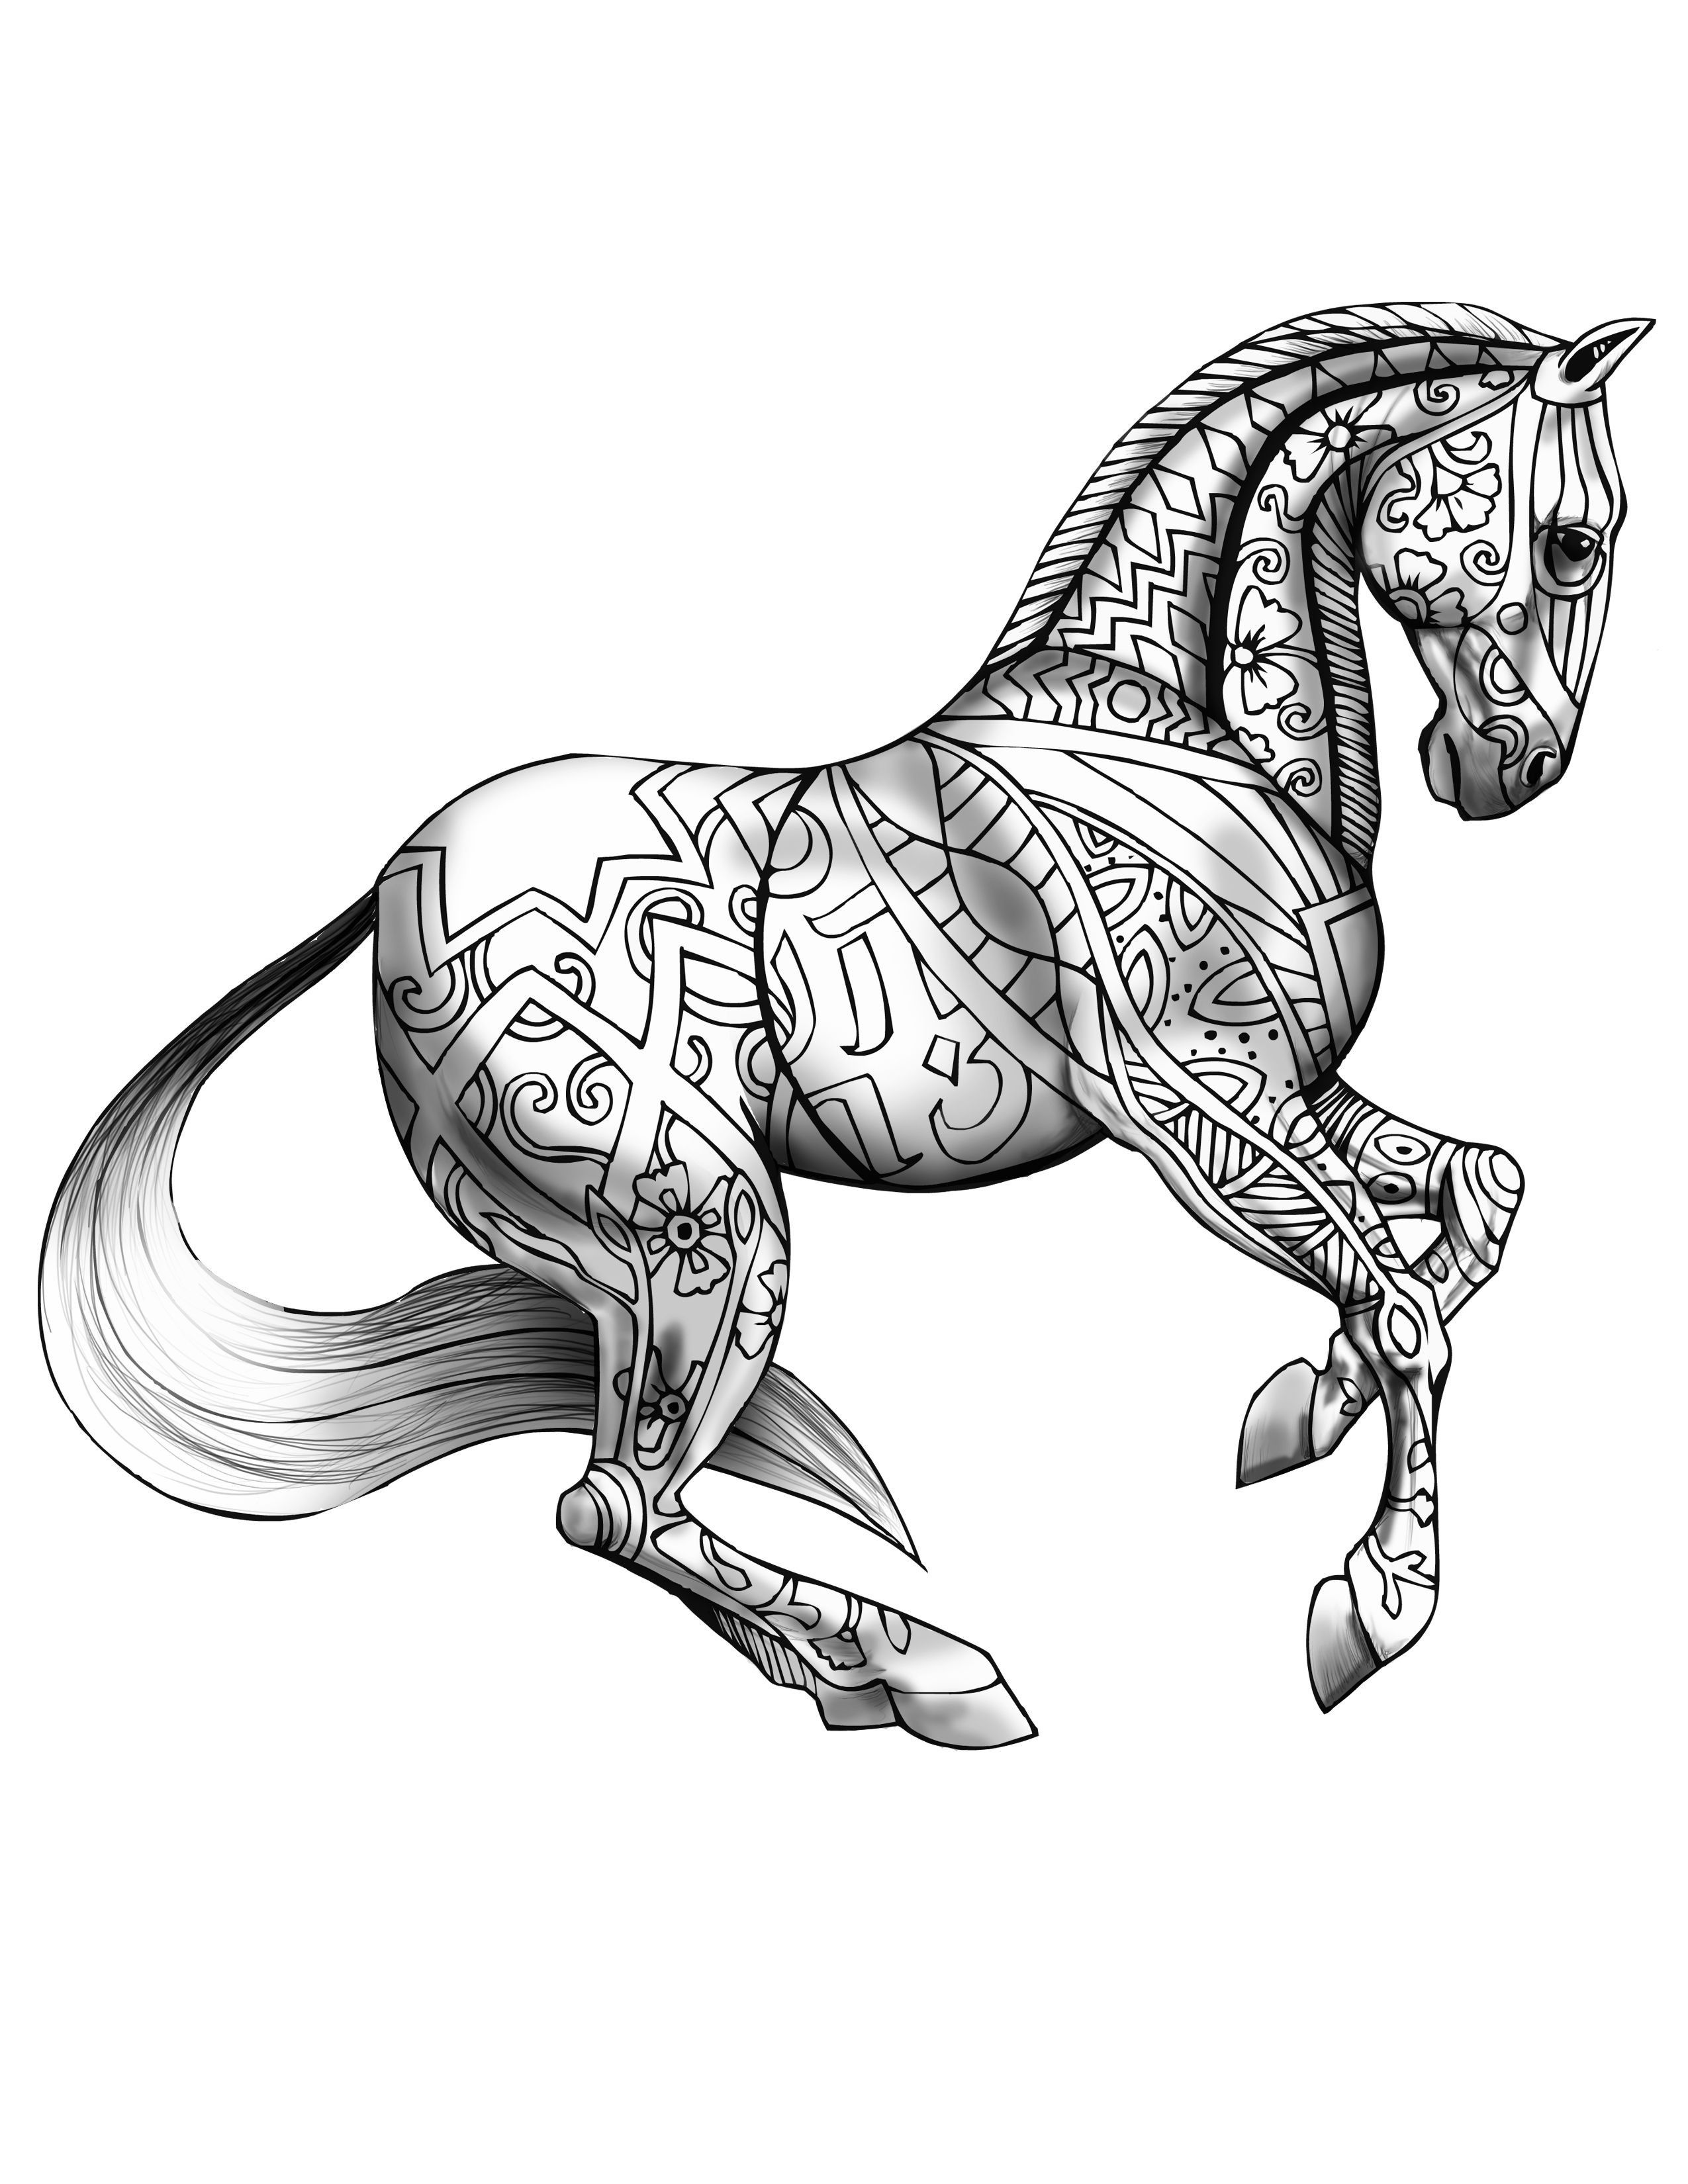 horses for free horse coloring pages for adults best coloring pages for kids horses for free